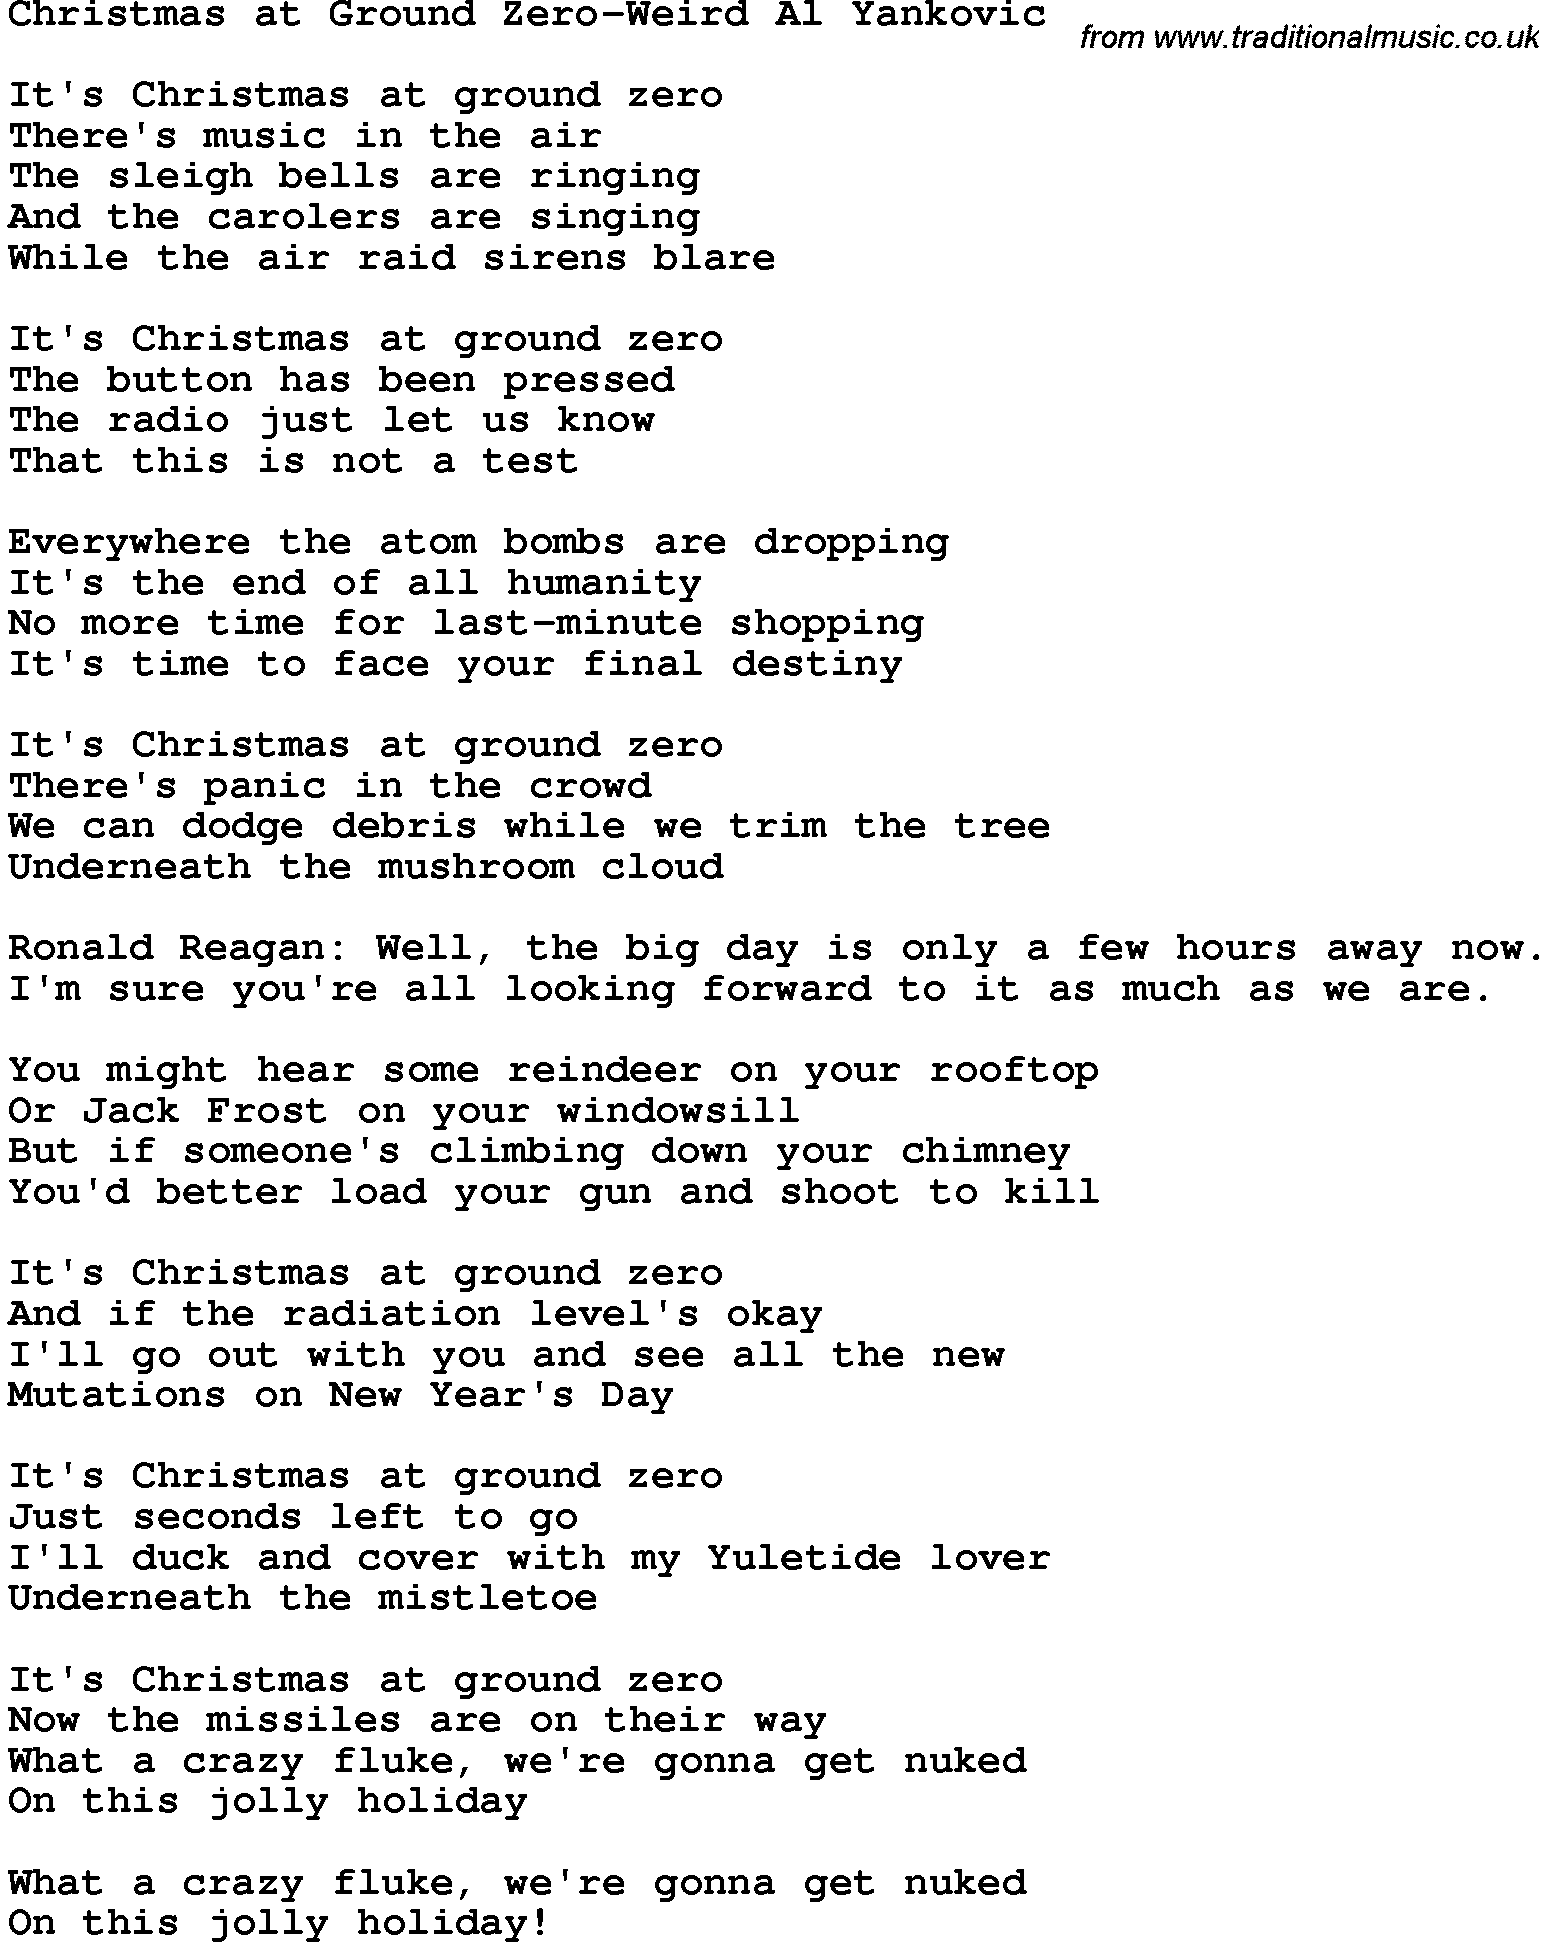 Novelty Song: Christmas At Ground Zero-Weird Al Yankovic lyrics